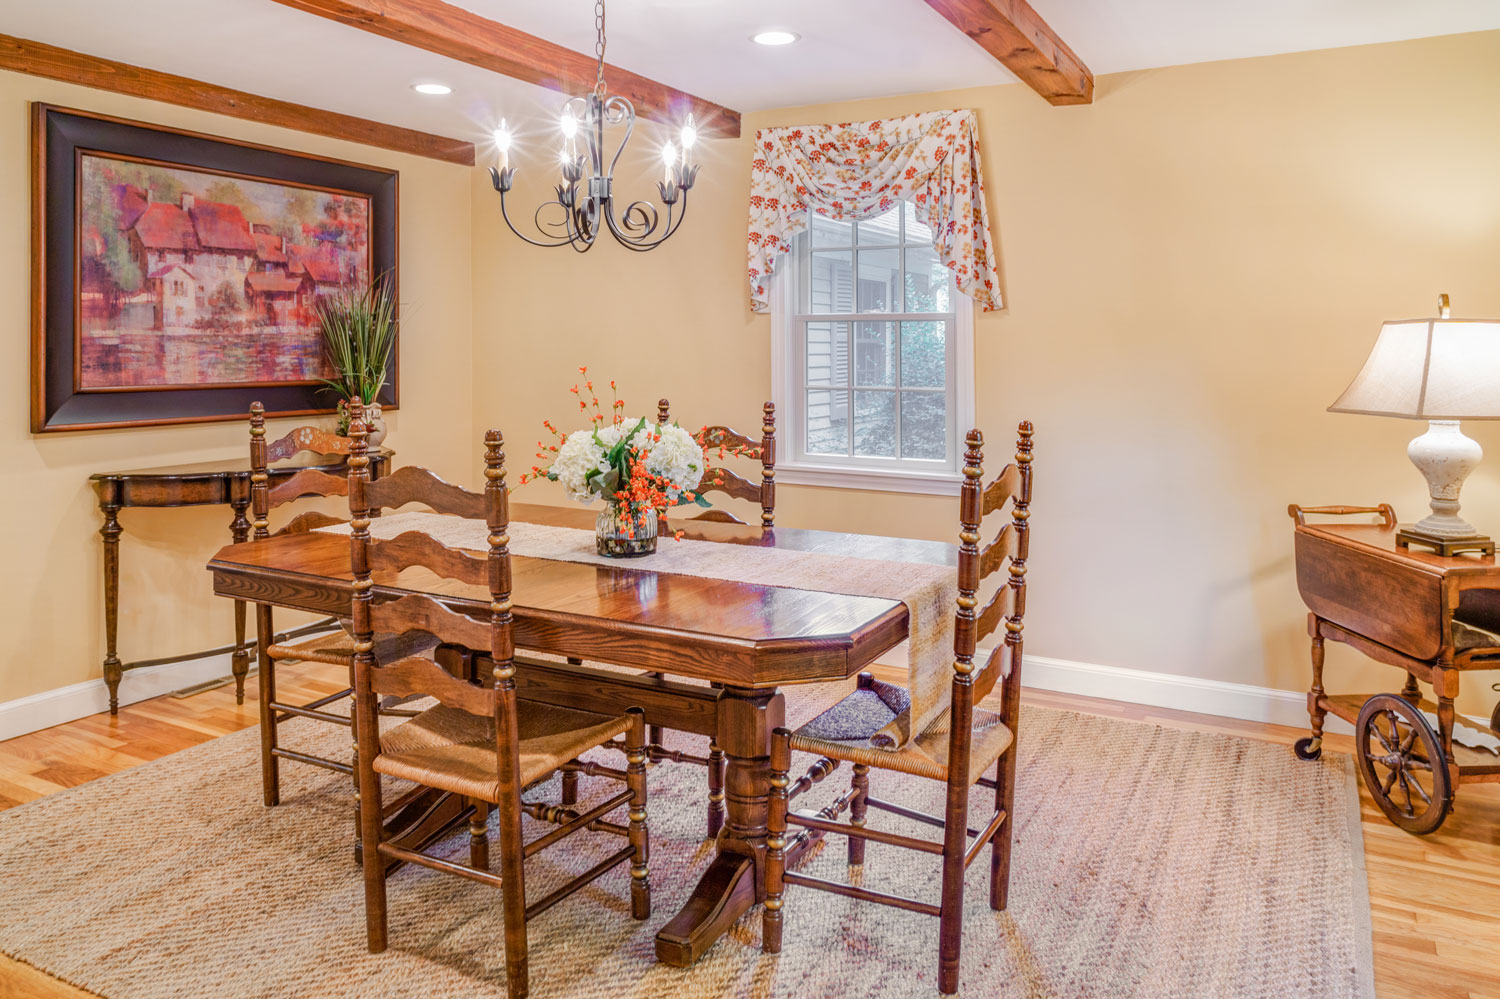 The redesign used the homeowner's existing colonial dining table and chairs.